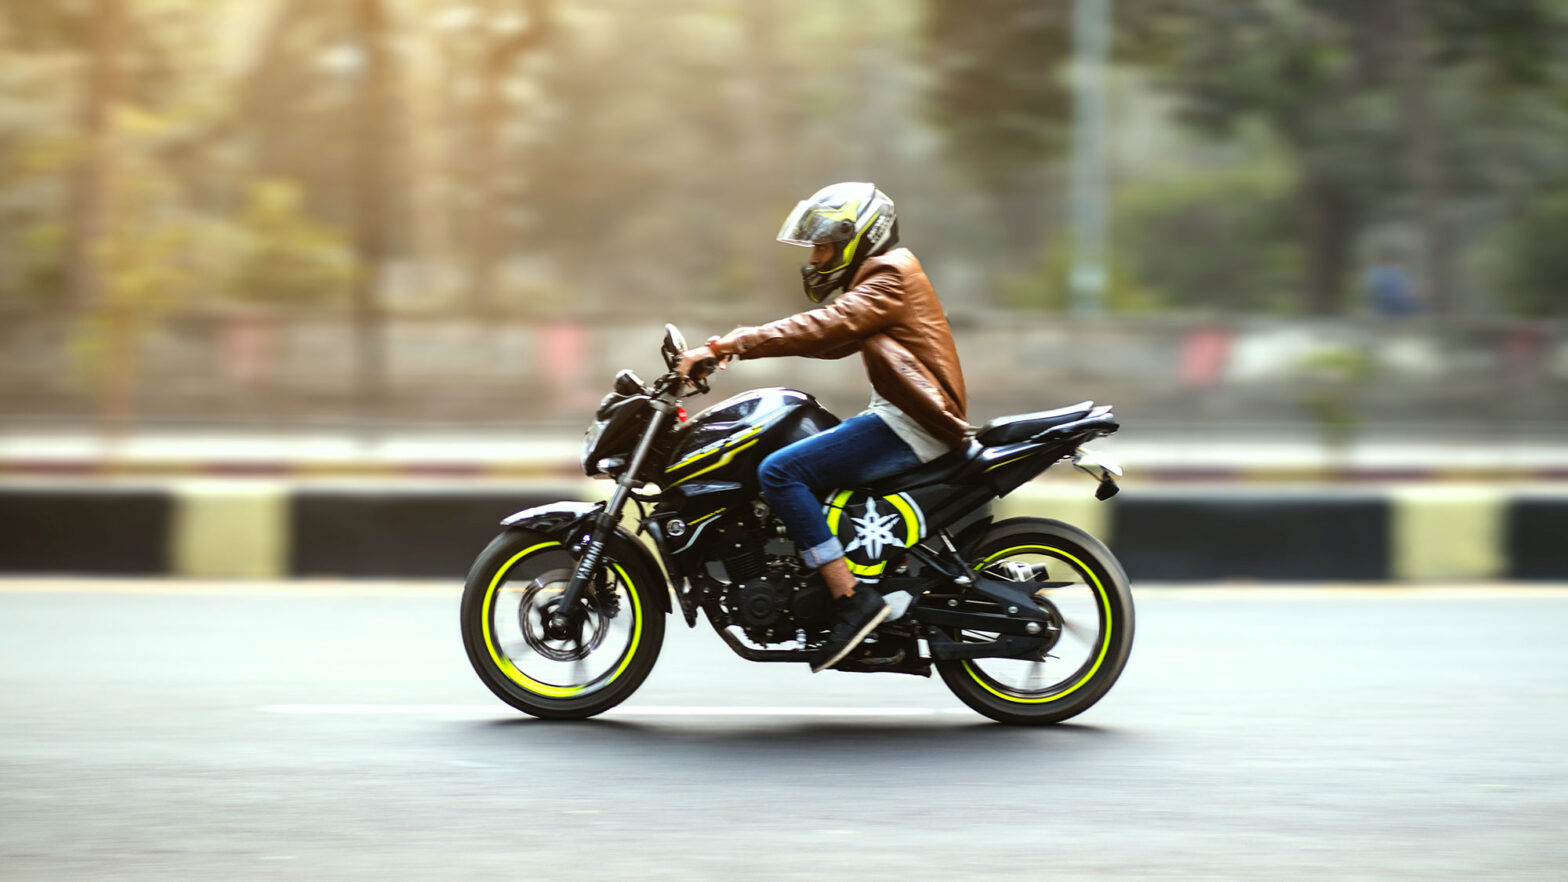 Road Safety Tips For Motorcycle Riders